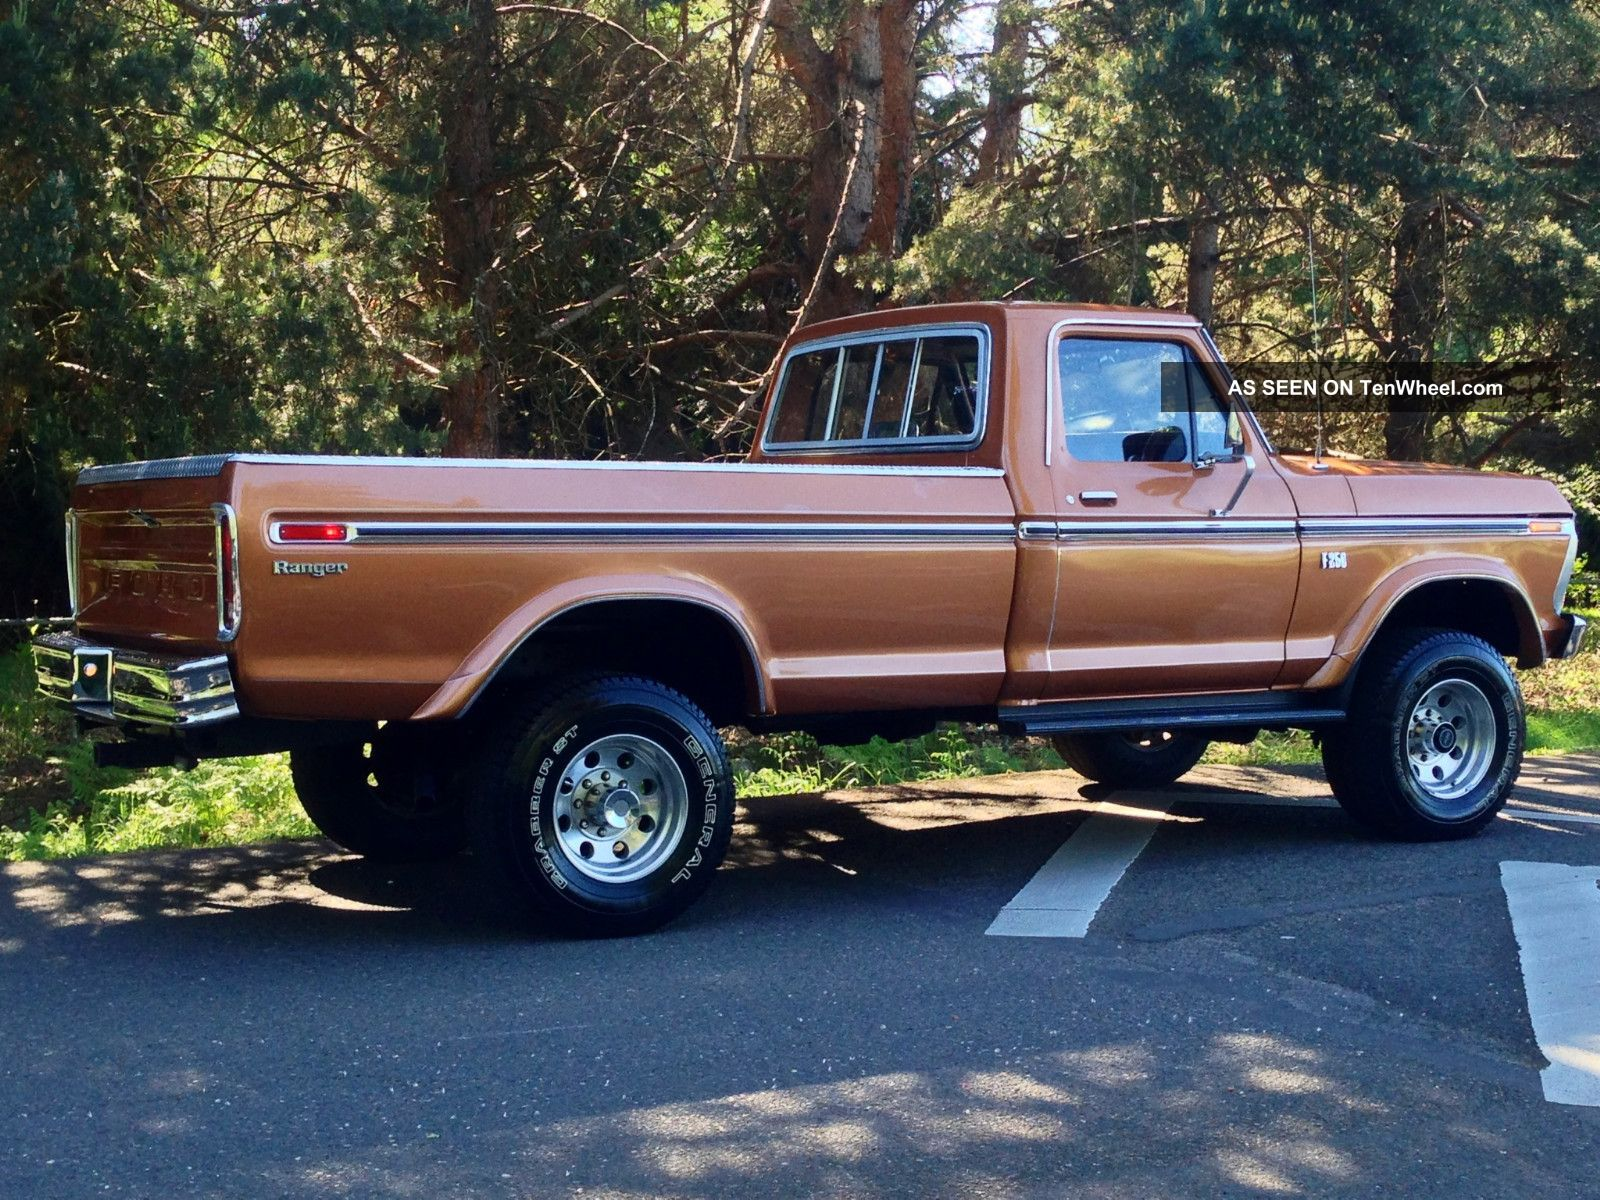 Ford f-250 1975 photo - 5